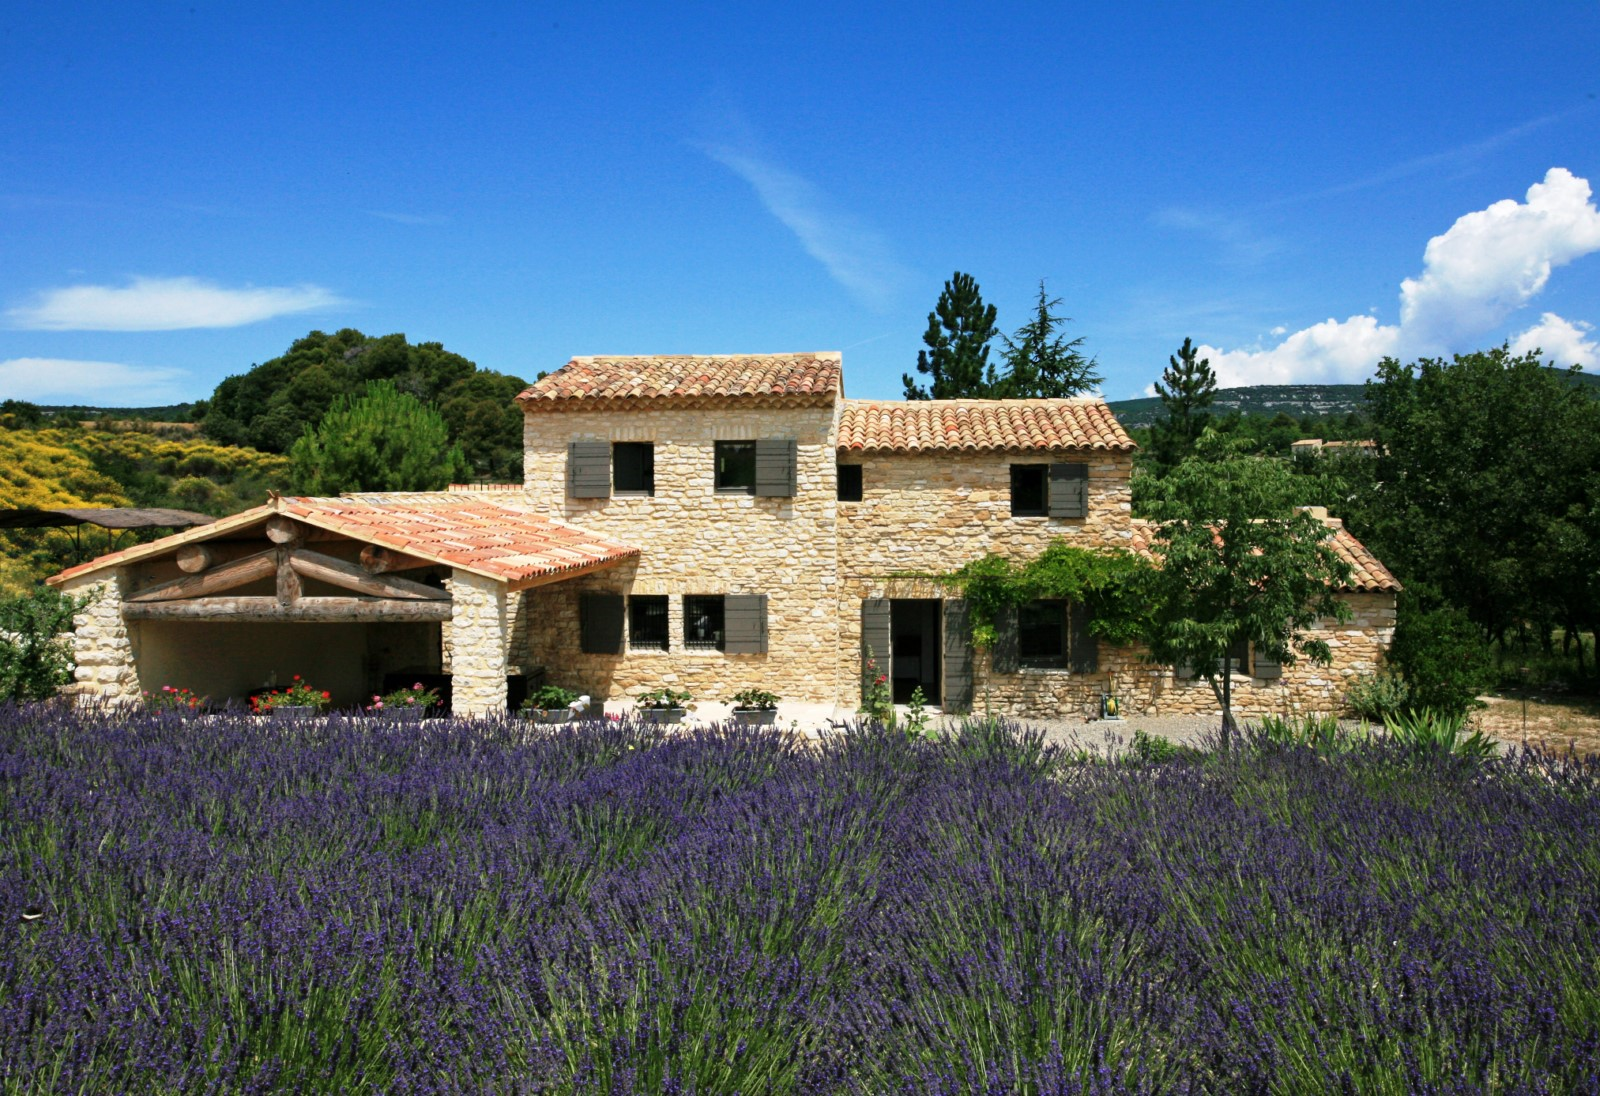 Luxury Real Estate Provence Pretty Stone Farmhouse To Rent For Great Holidays